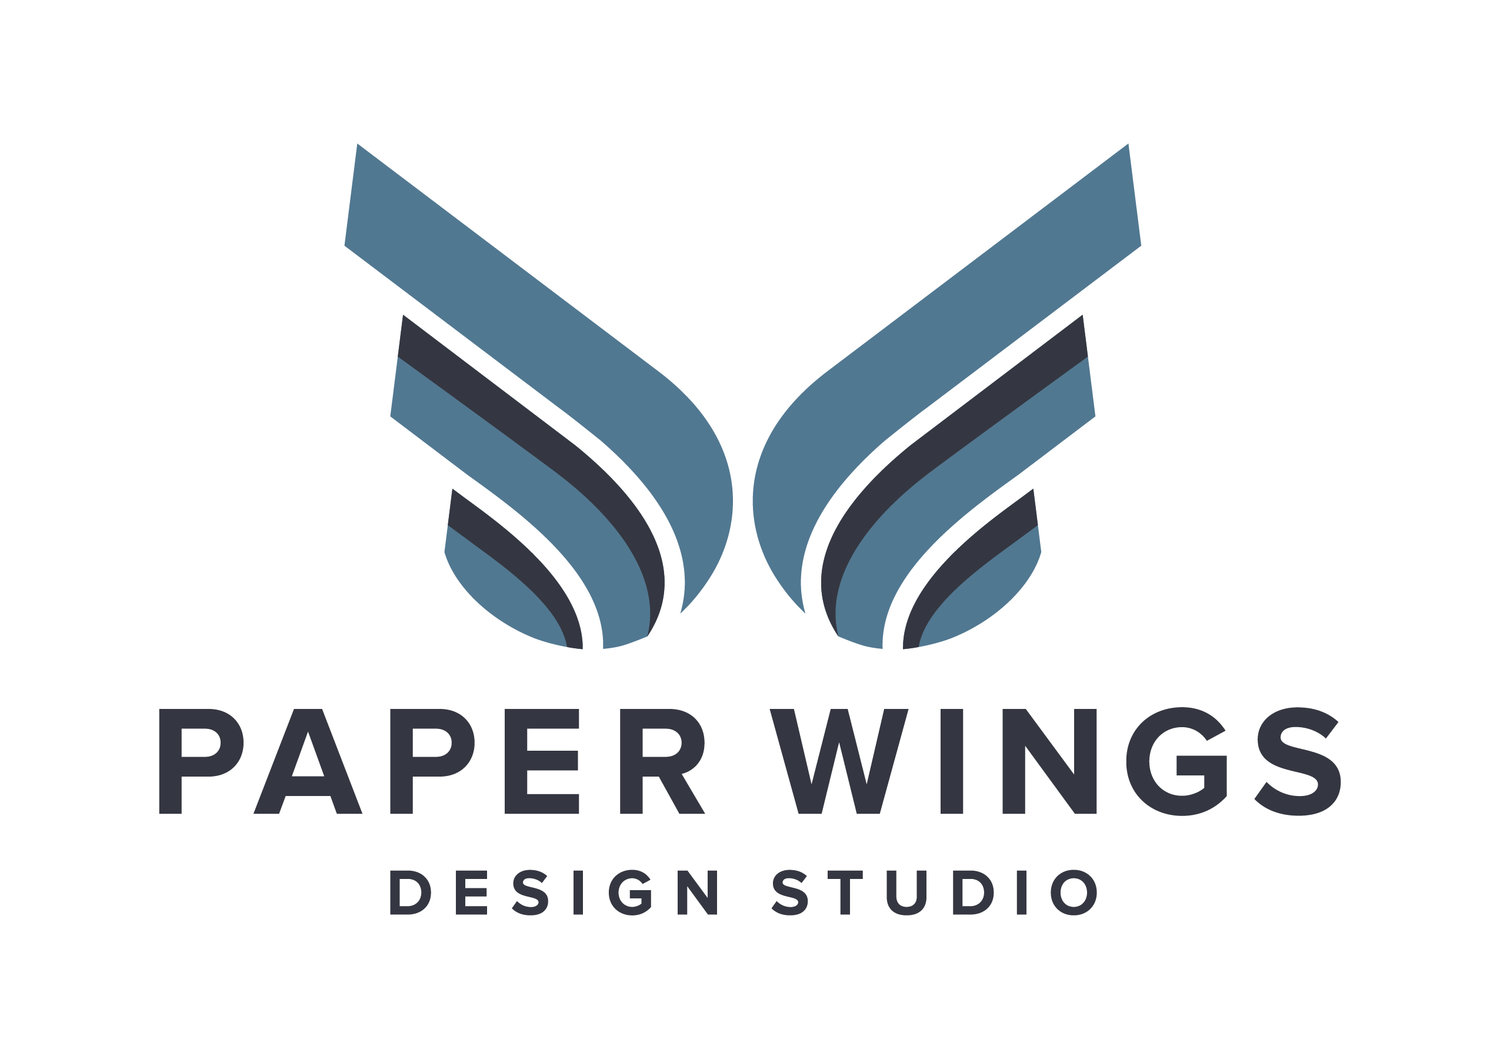 Paper Wings Design Studio